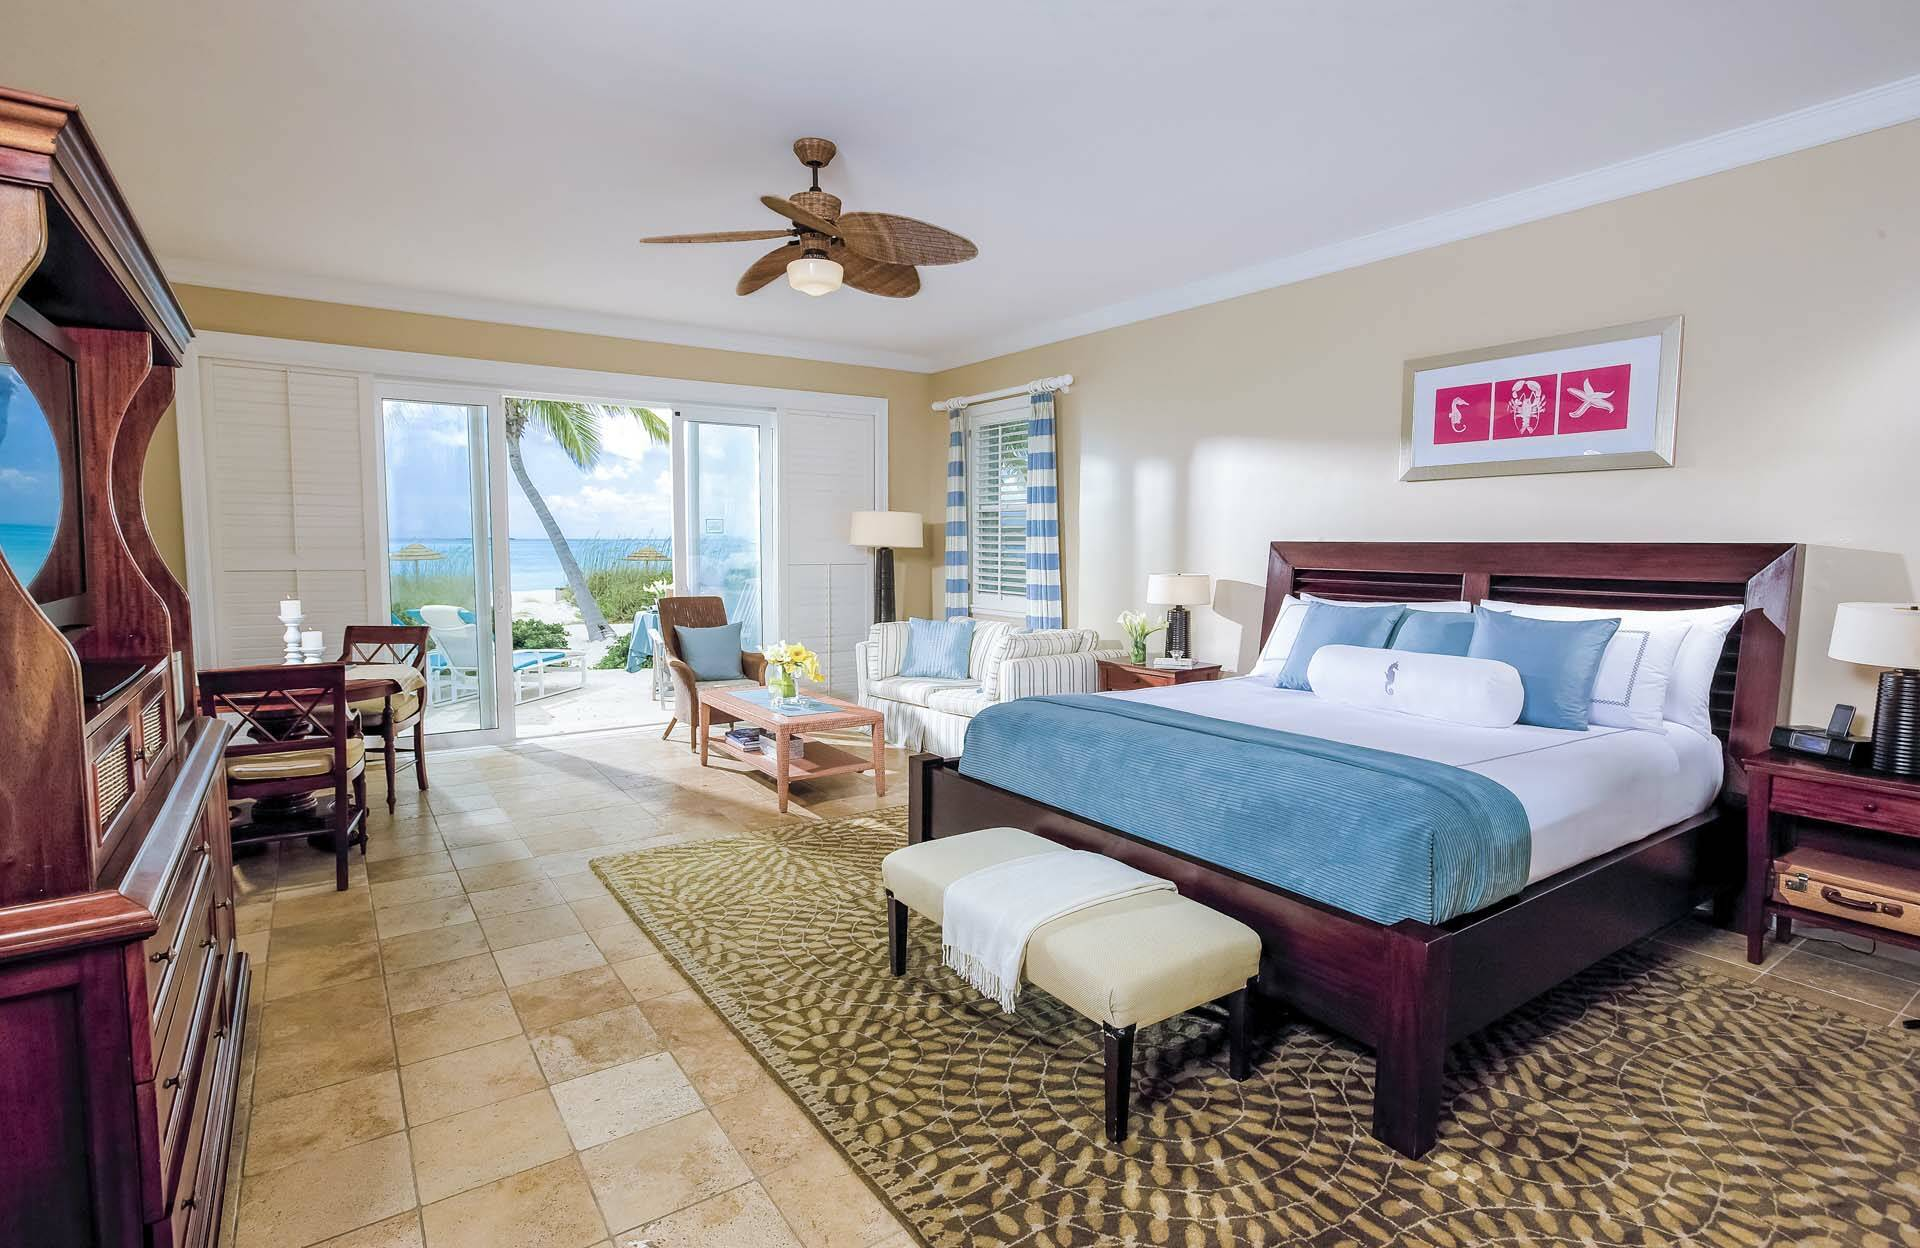 Sandals Emerald Bay Exuma Bahamas Harbour Bay Beachfront VillaSuite